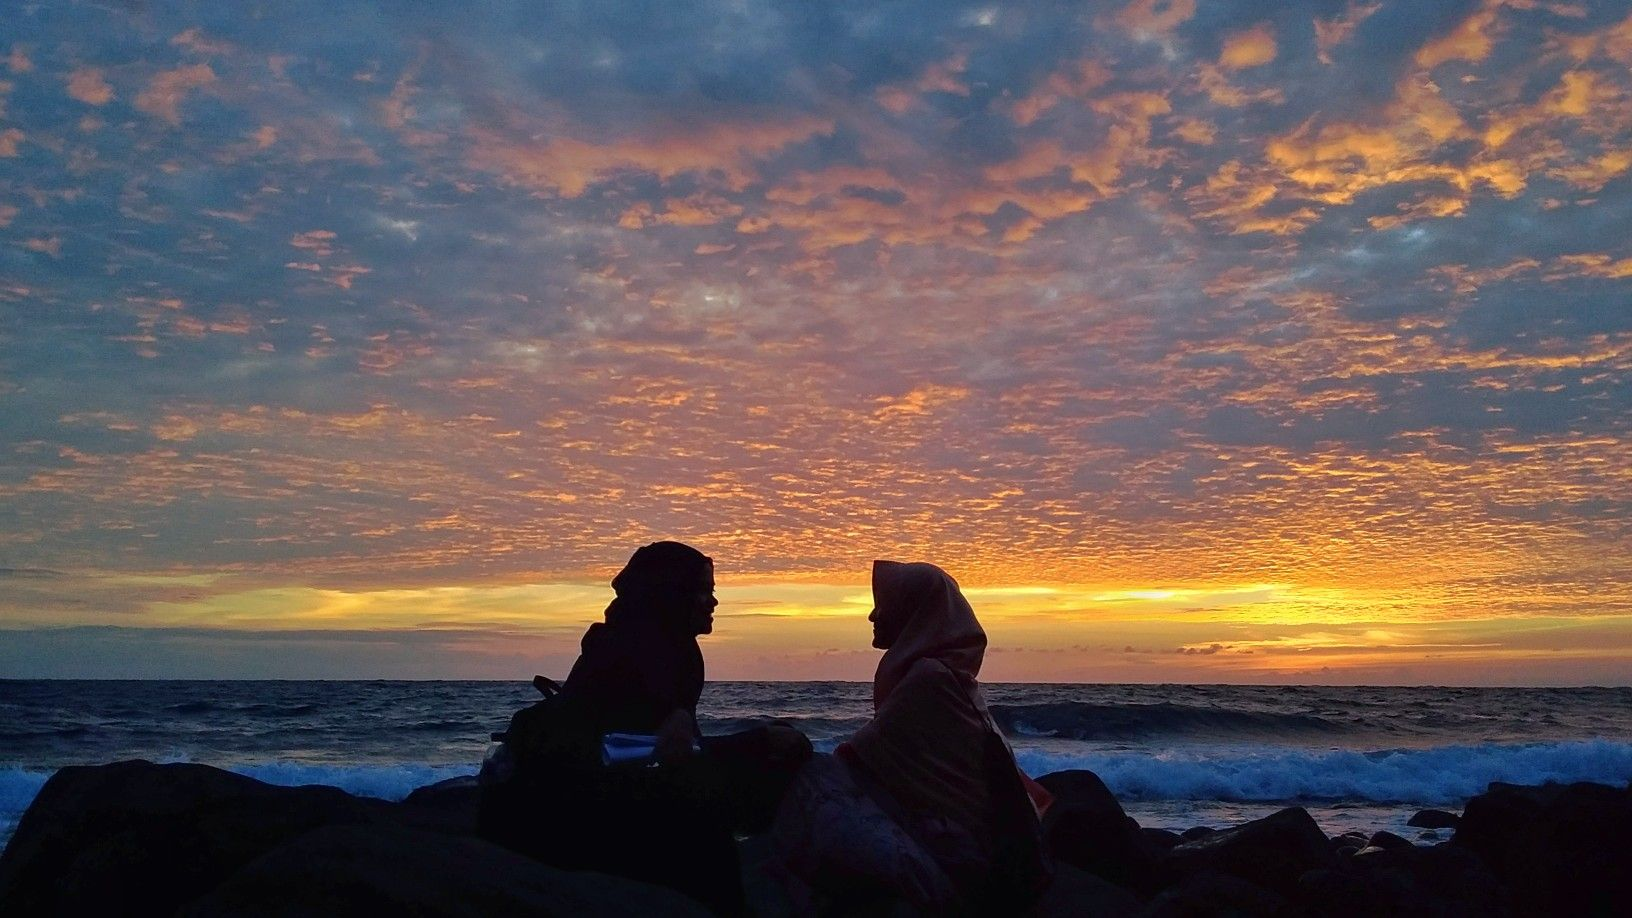 Bestfriend Sunset Sunrise Sahabat Senja Fotografi Alam